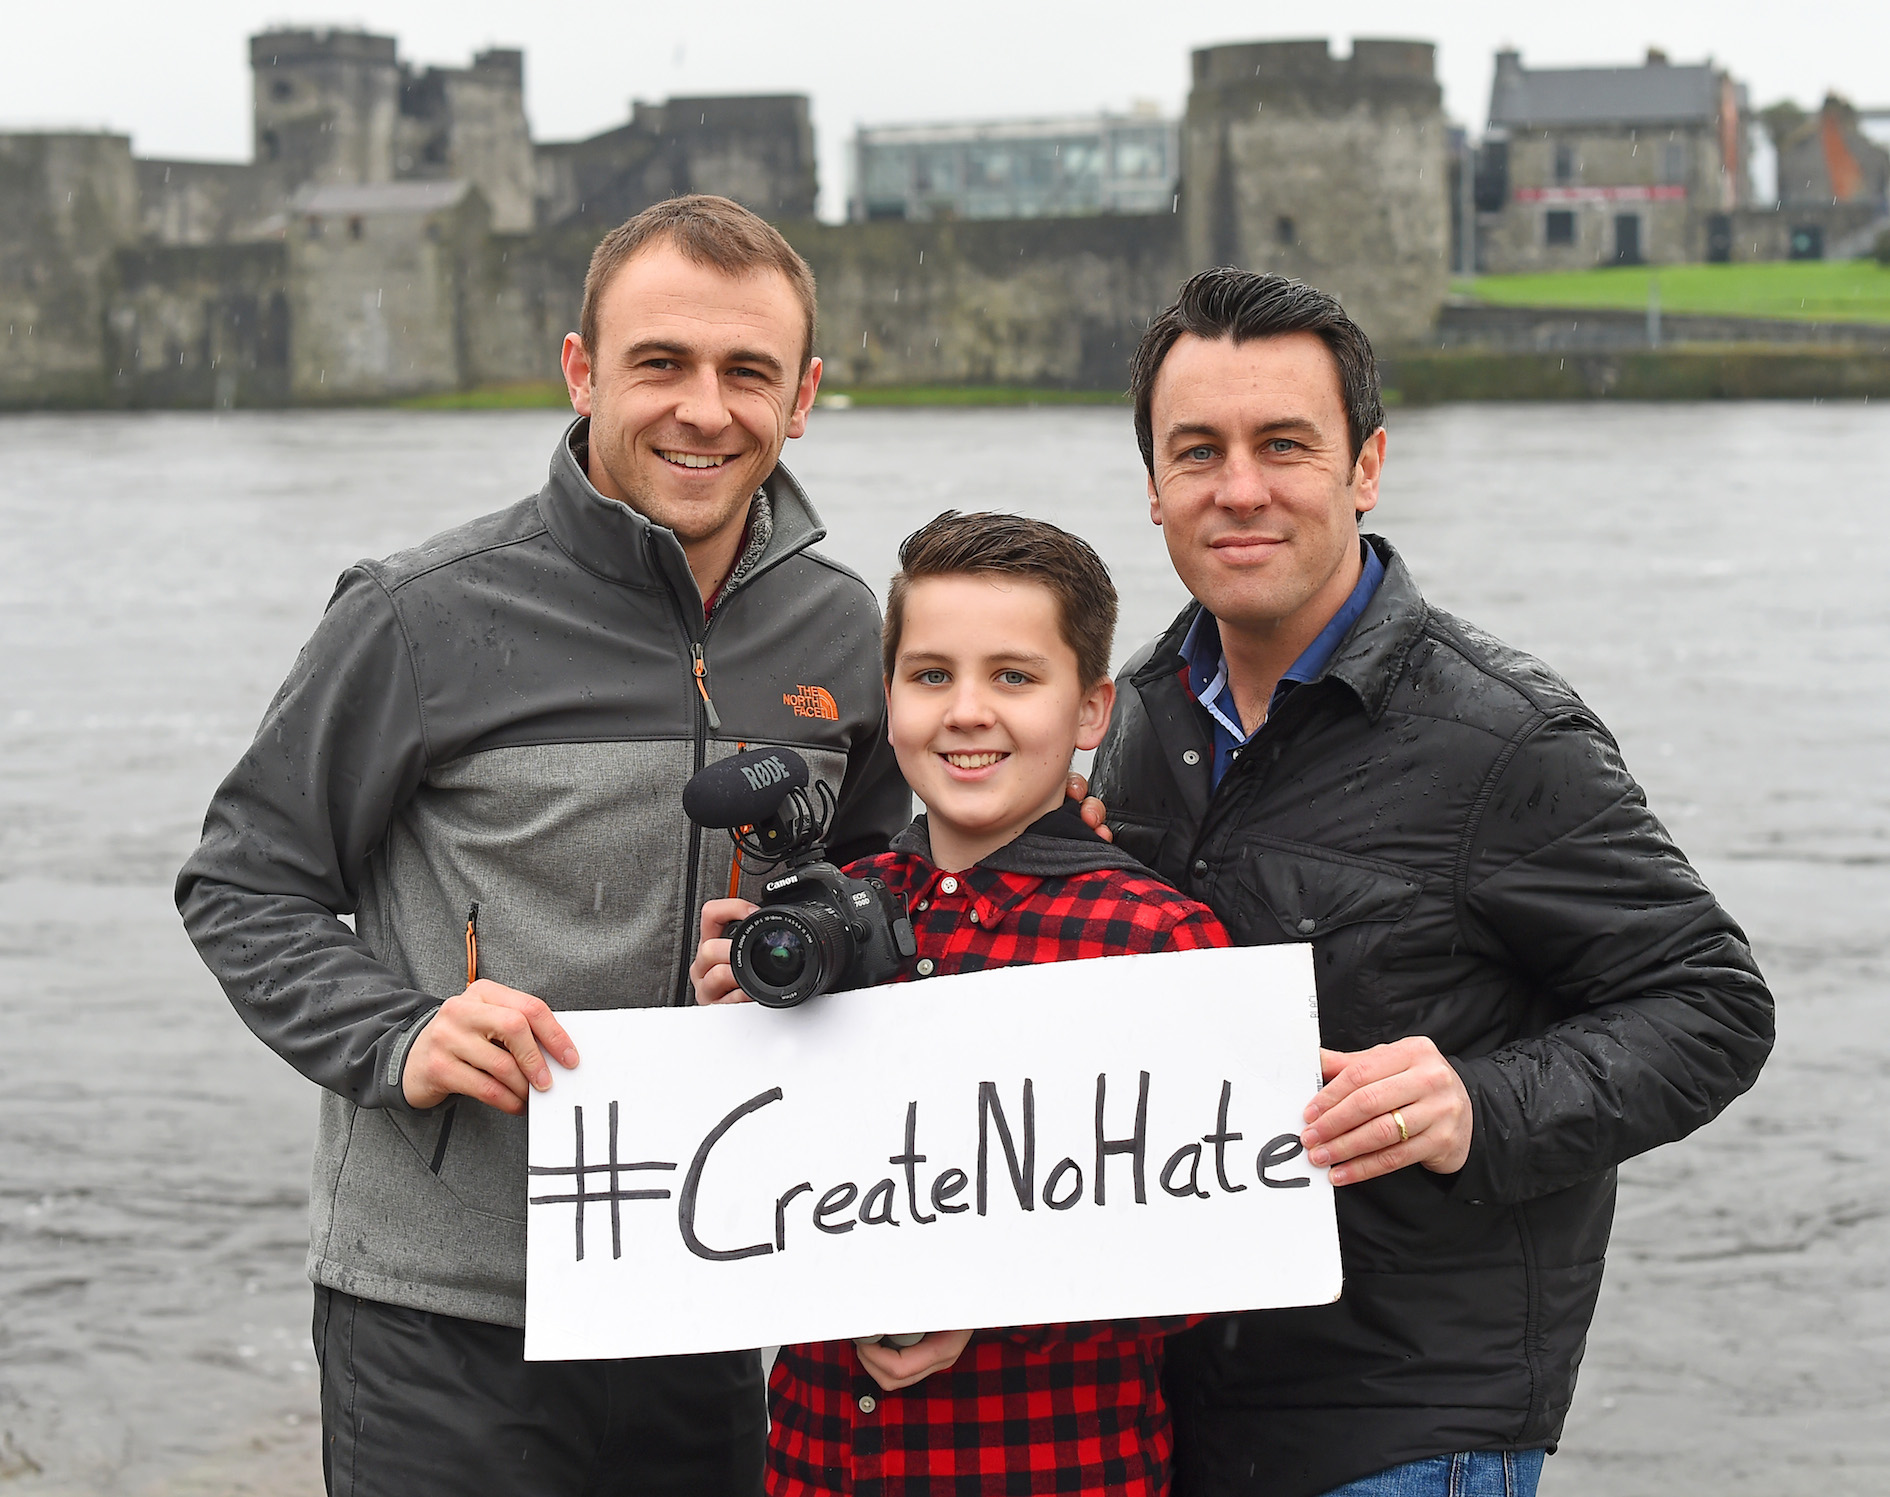 The #CreateNoHate team - Luke Culhane with his cousin videographer Diarmuid Greene and his dad Dermot Culhane